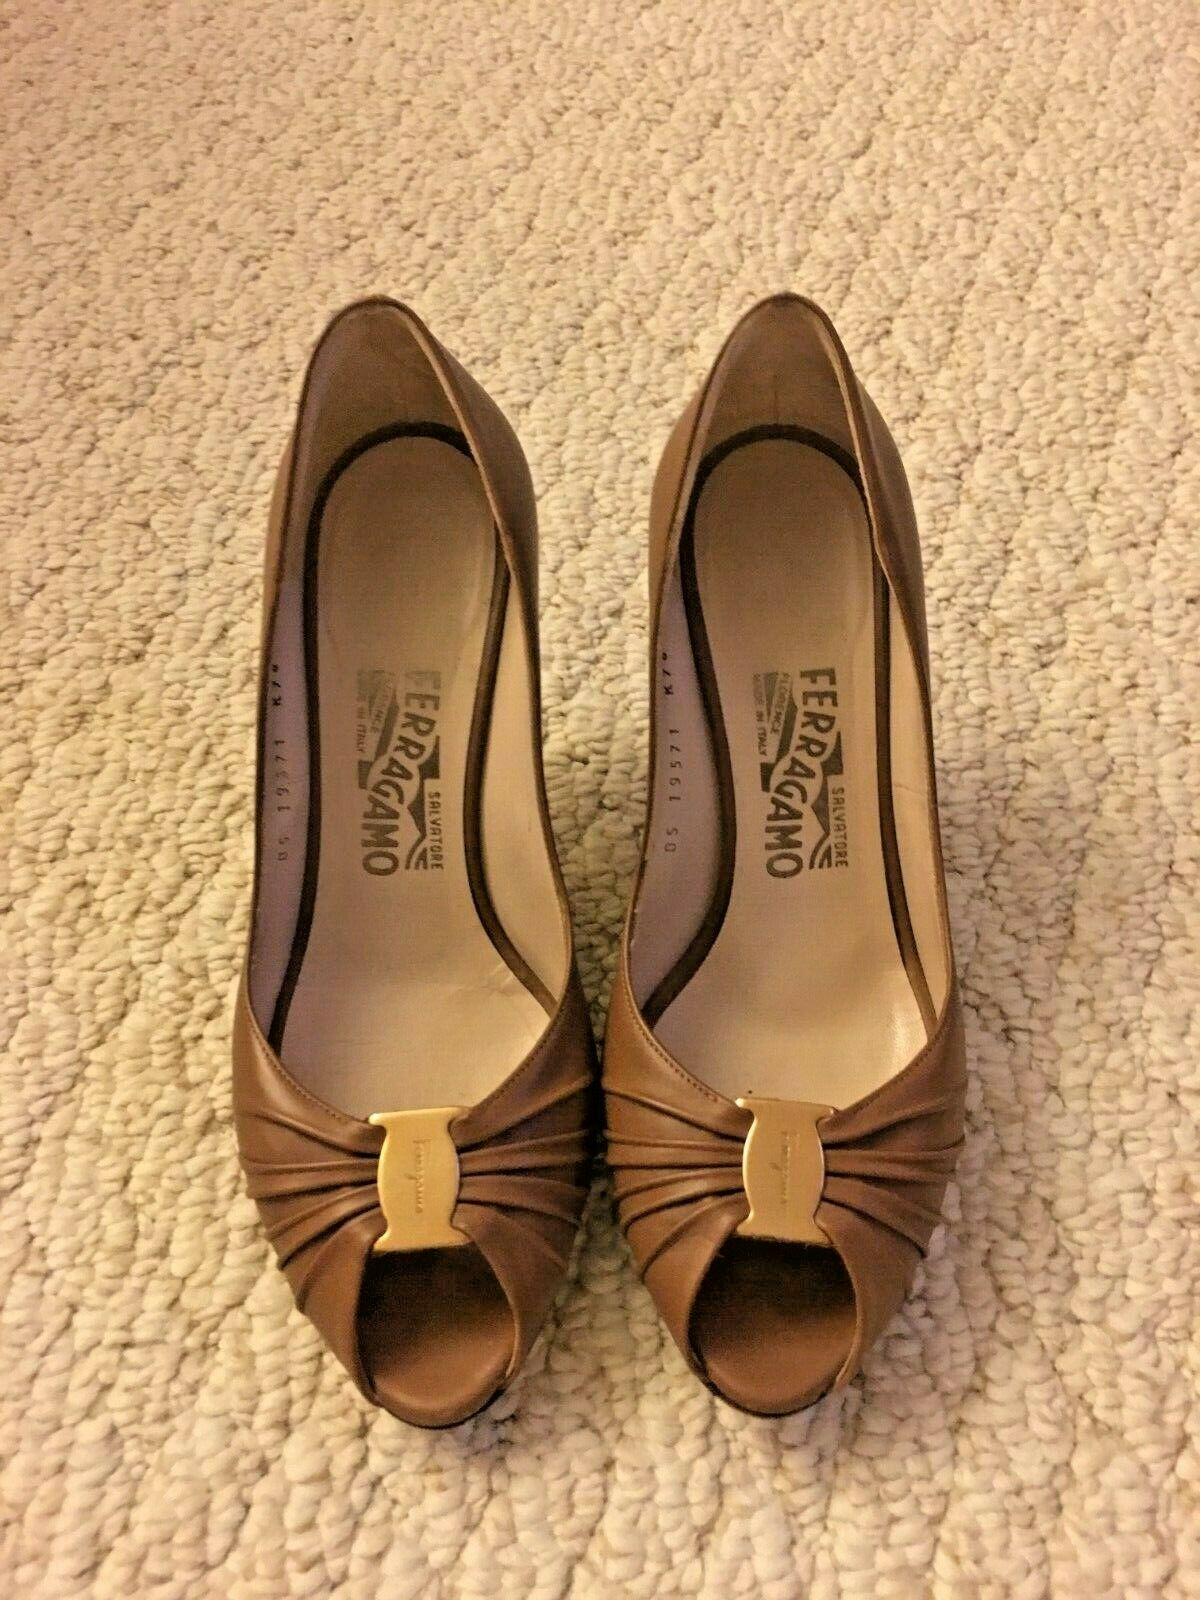 Salvatore Ferragamo Fiberia Leather Womens Pumps Size 8